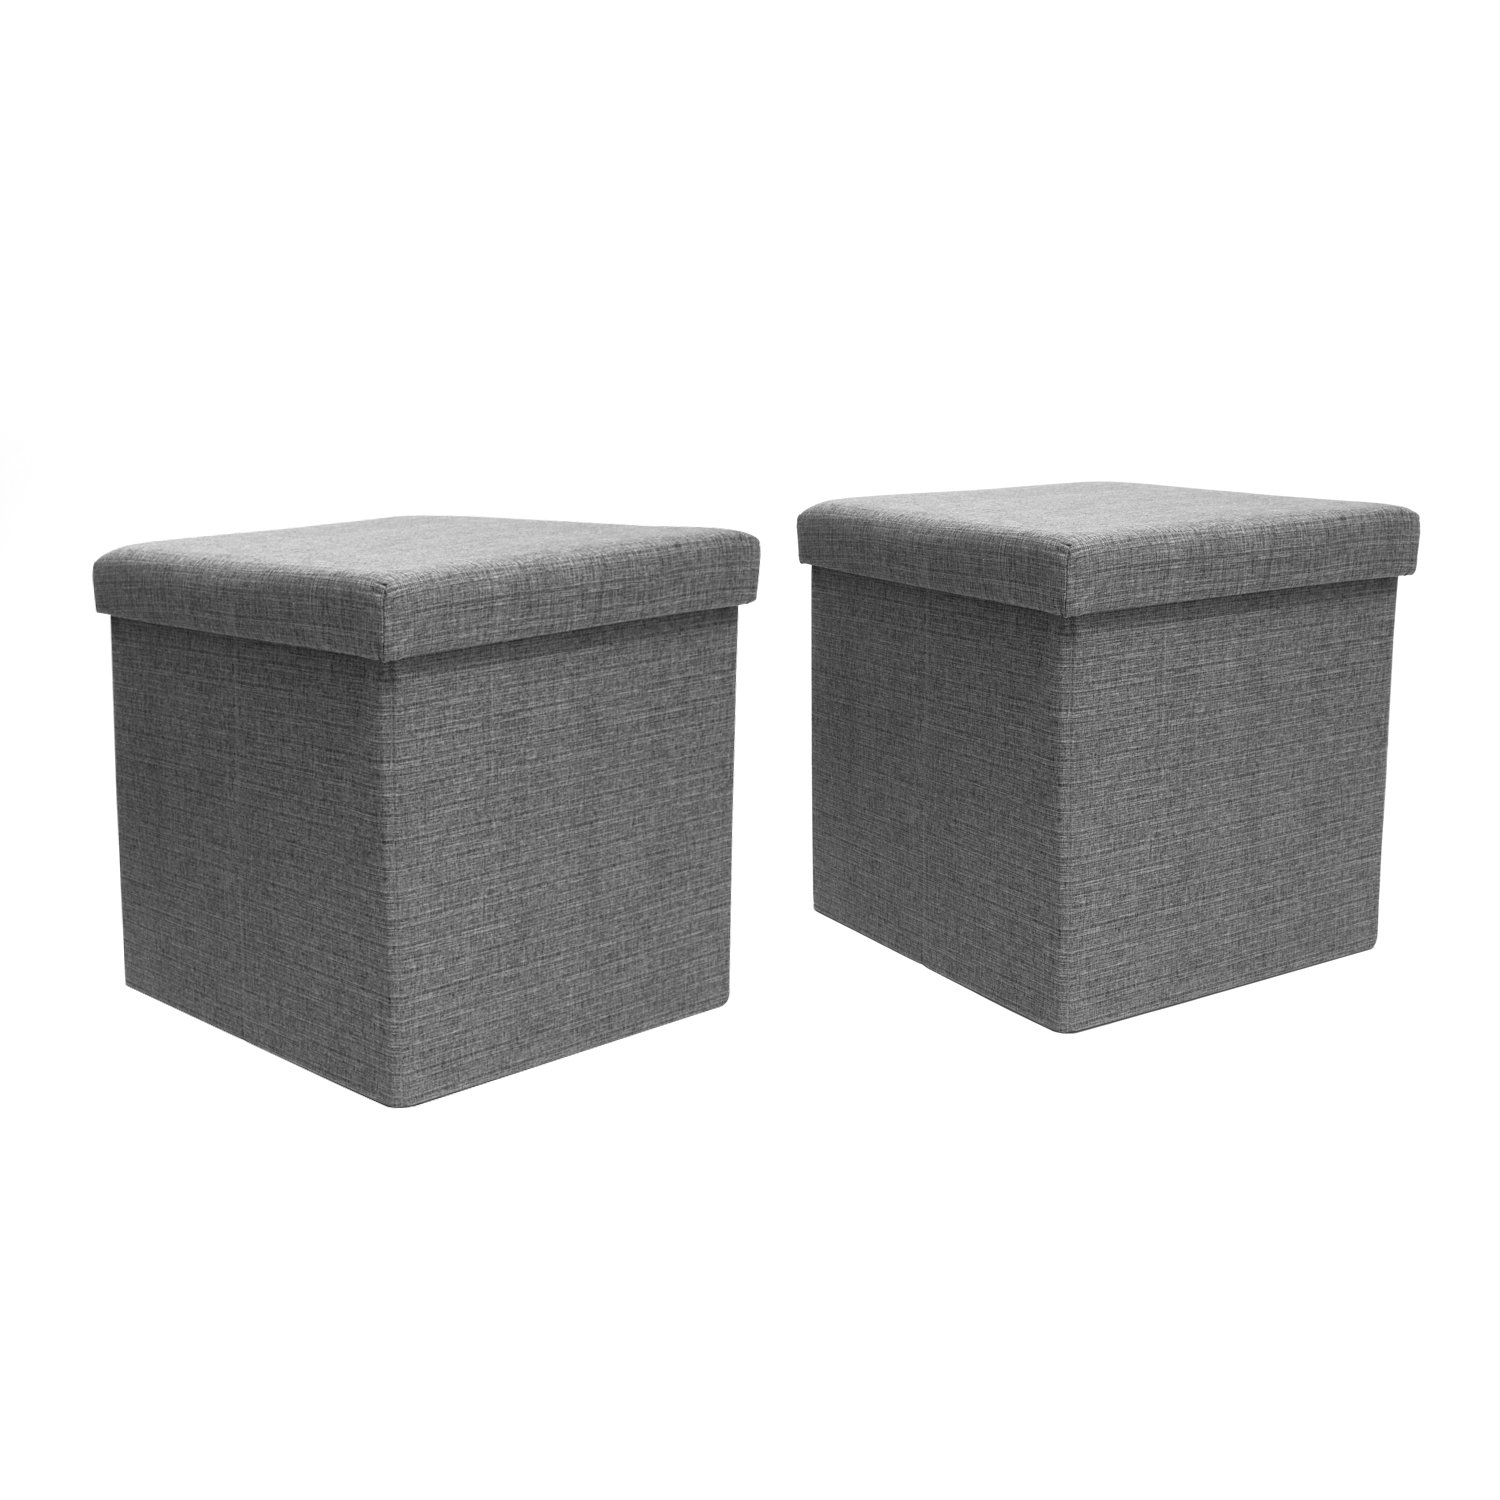 FHE Group Folding Storage Ottomans with Hard Lids - 16 by 16 by 16 Inches - Gray - Set of 2